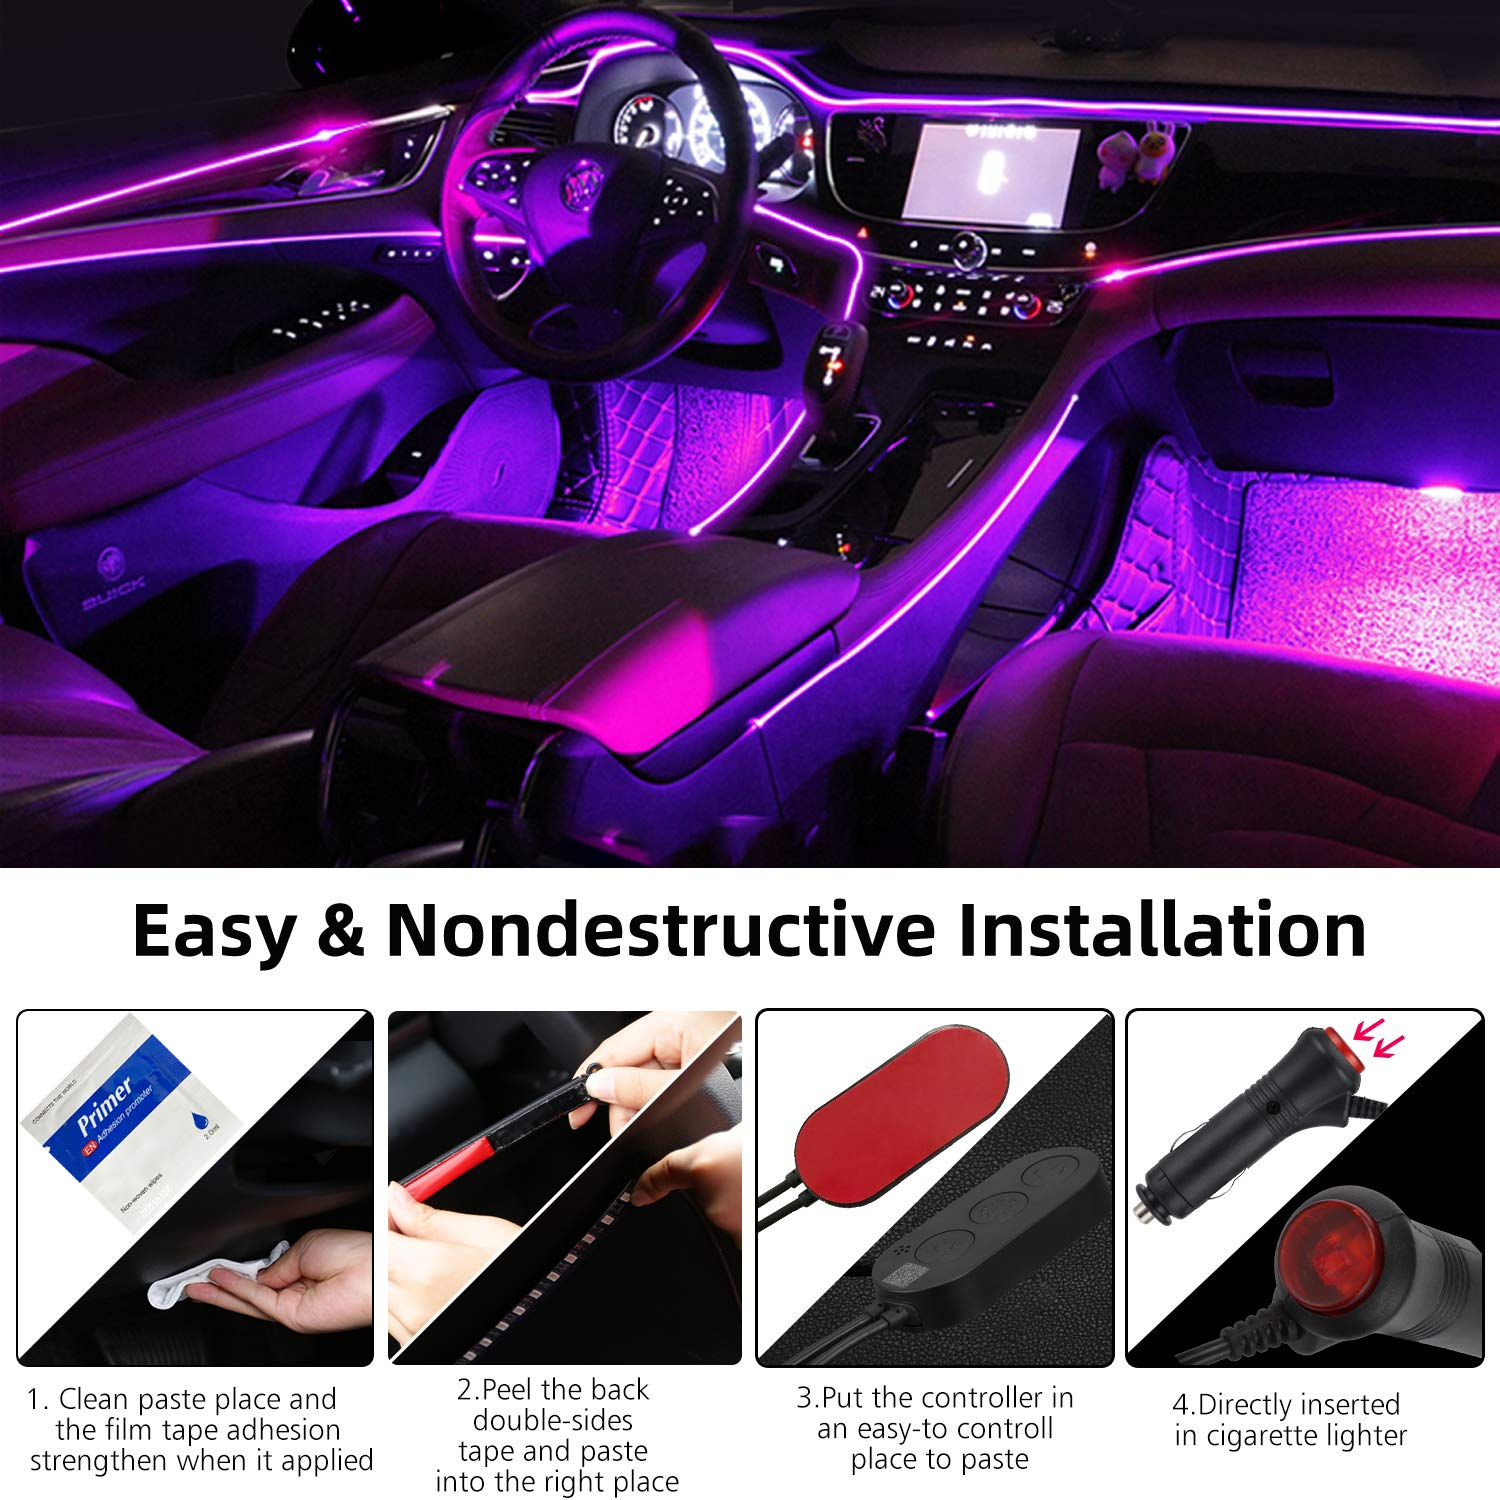 APP Controller LED Interior Car Lights for Cell Phone,Waterproof 4pcs 48 LED Multi DIY RGB Color Music under Dash Car Lighting Kits with Music Sensor,Car Charger,DC 12V S.M Good Car LED Strip Lights